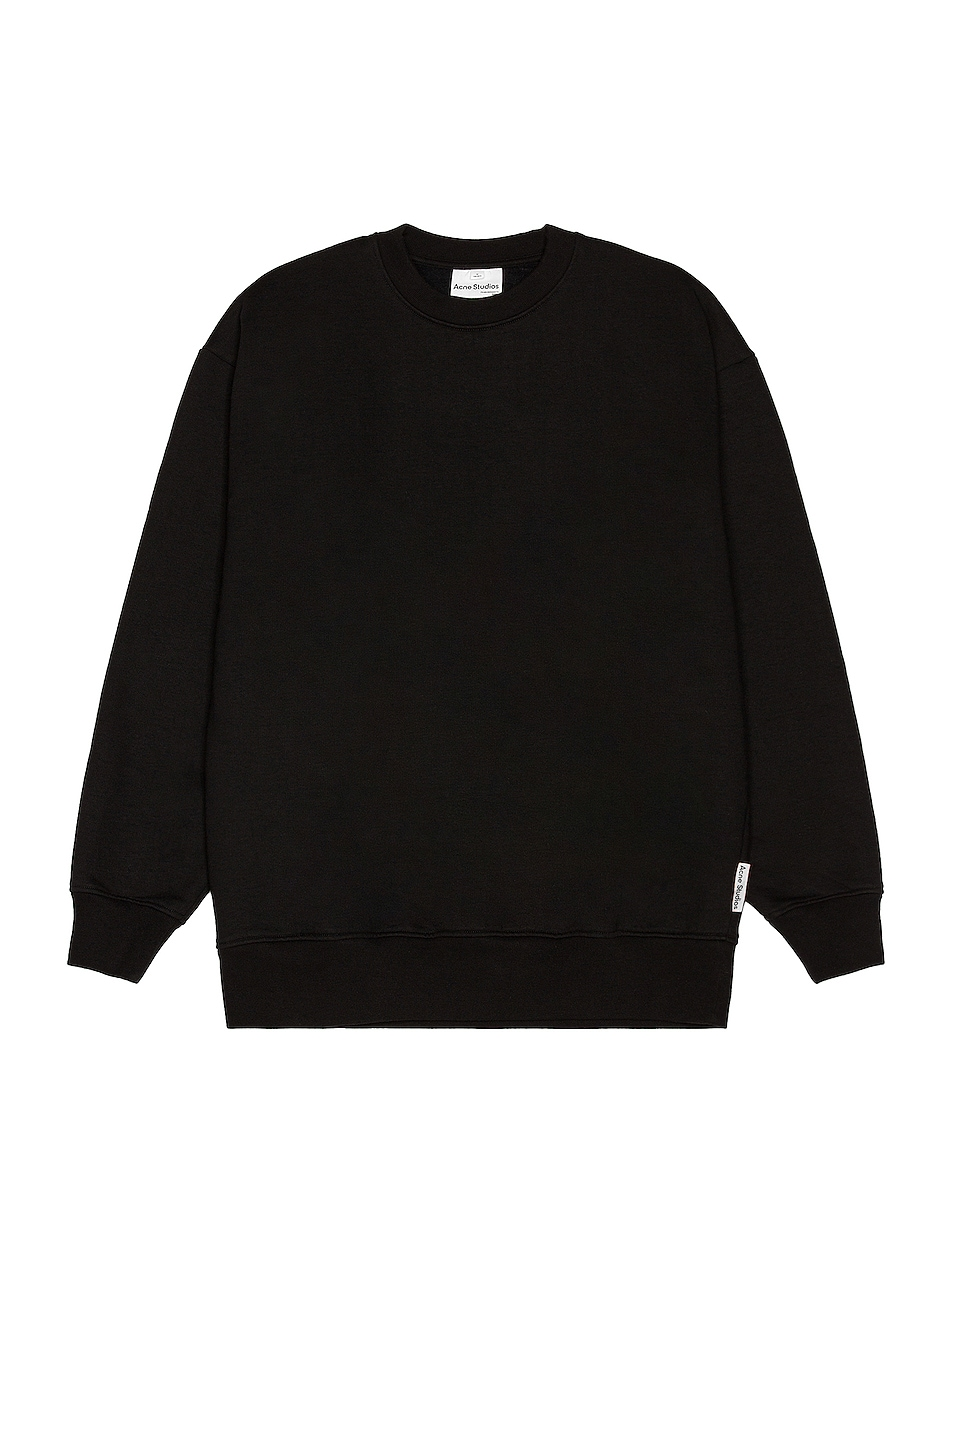 Image 1 of Acne Studios Forban Pink Label Sweatshirt in Black